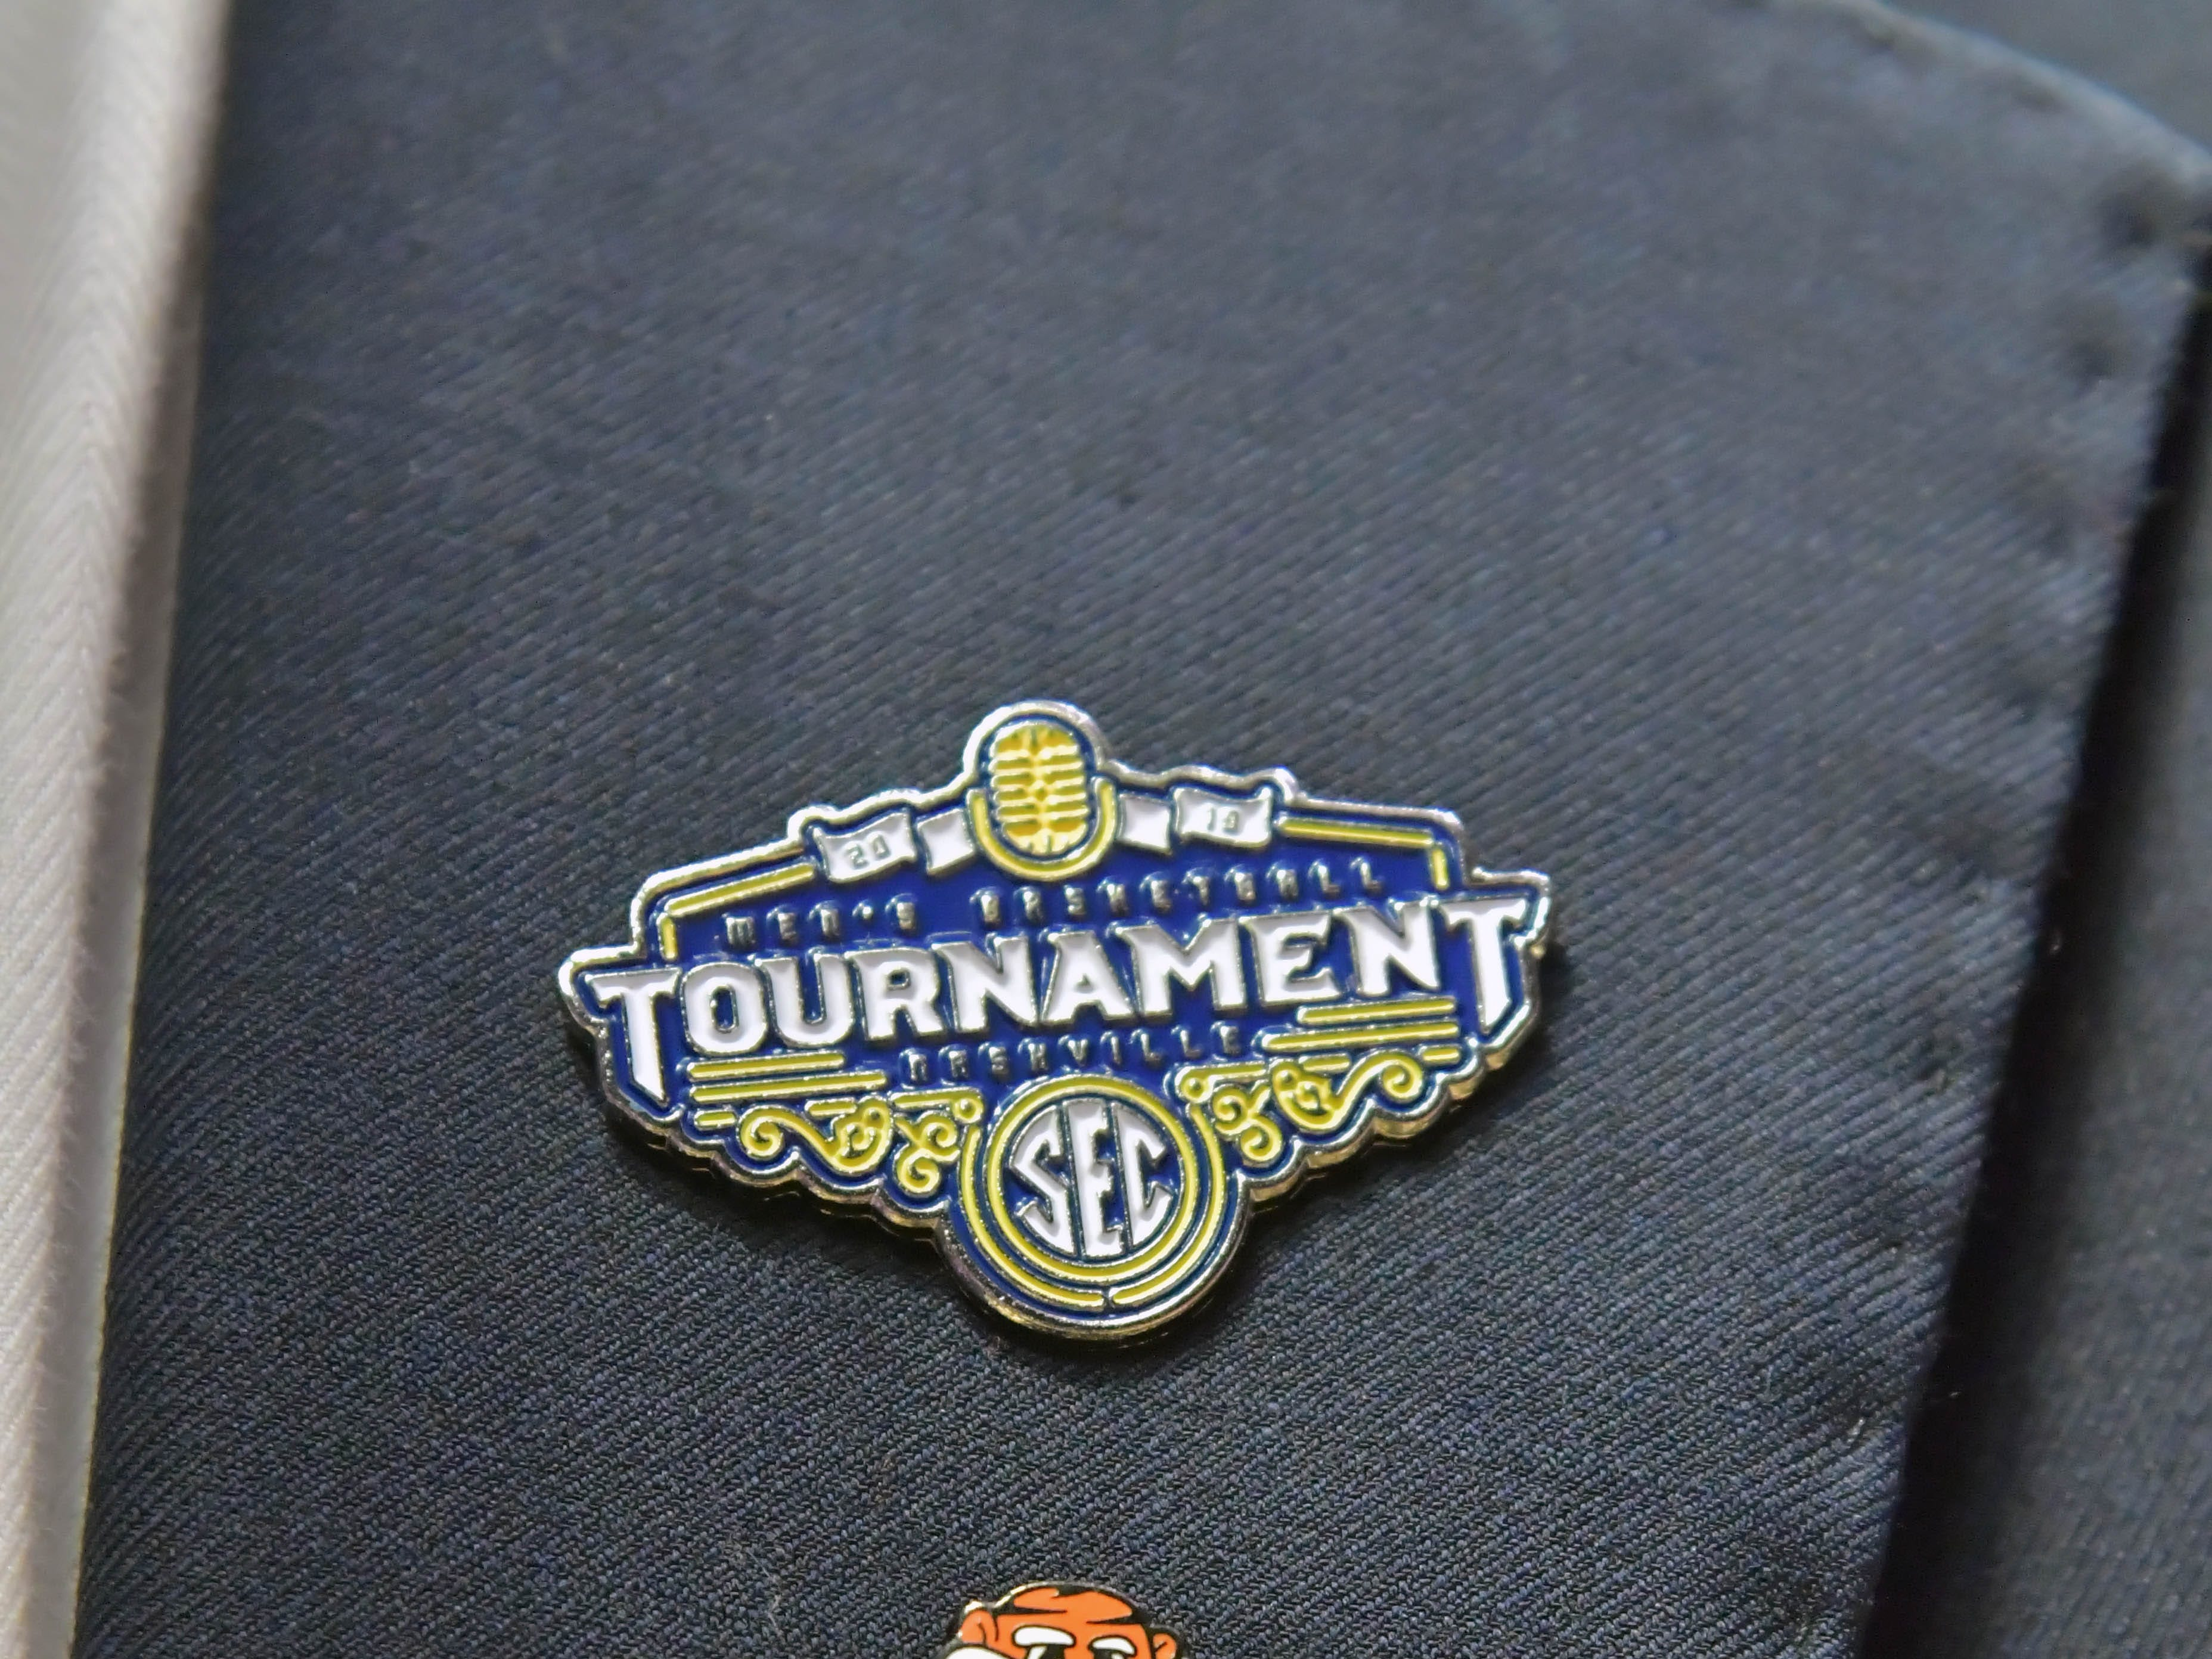 Mar 17, 2019; Nashville, TN, USA; Lapel pins worn by Auburn alumni and former NBA Dallas Mavericks player Marquis Daniels  (center) during the championship game between the Tennessee Volunteers and the Auburn Tigers  in the SEC conference tournament at Bridgestone Arena. Auburn won 84-64. Mandatory Credit: Jim Brown-USA TODAY Sports